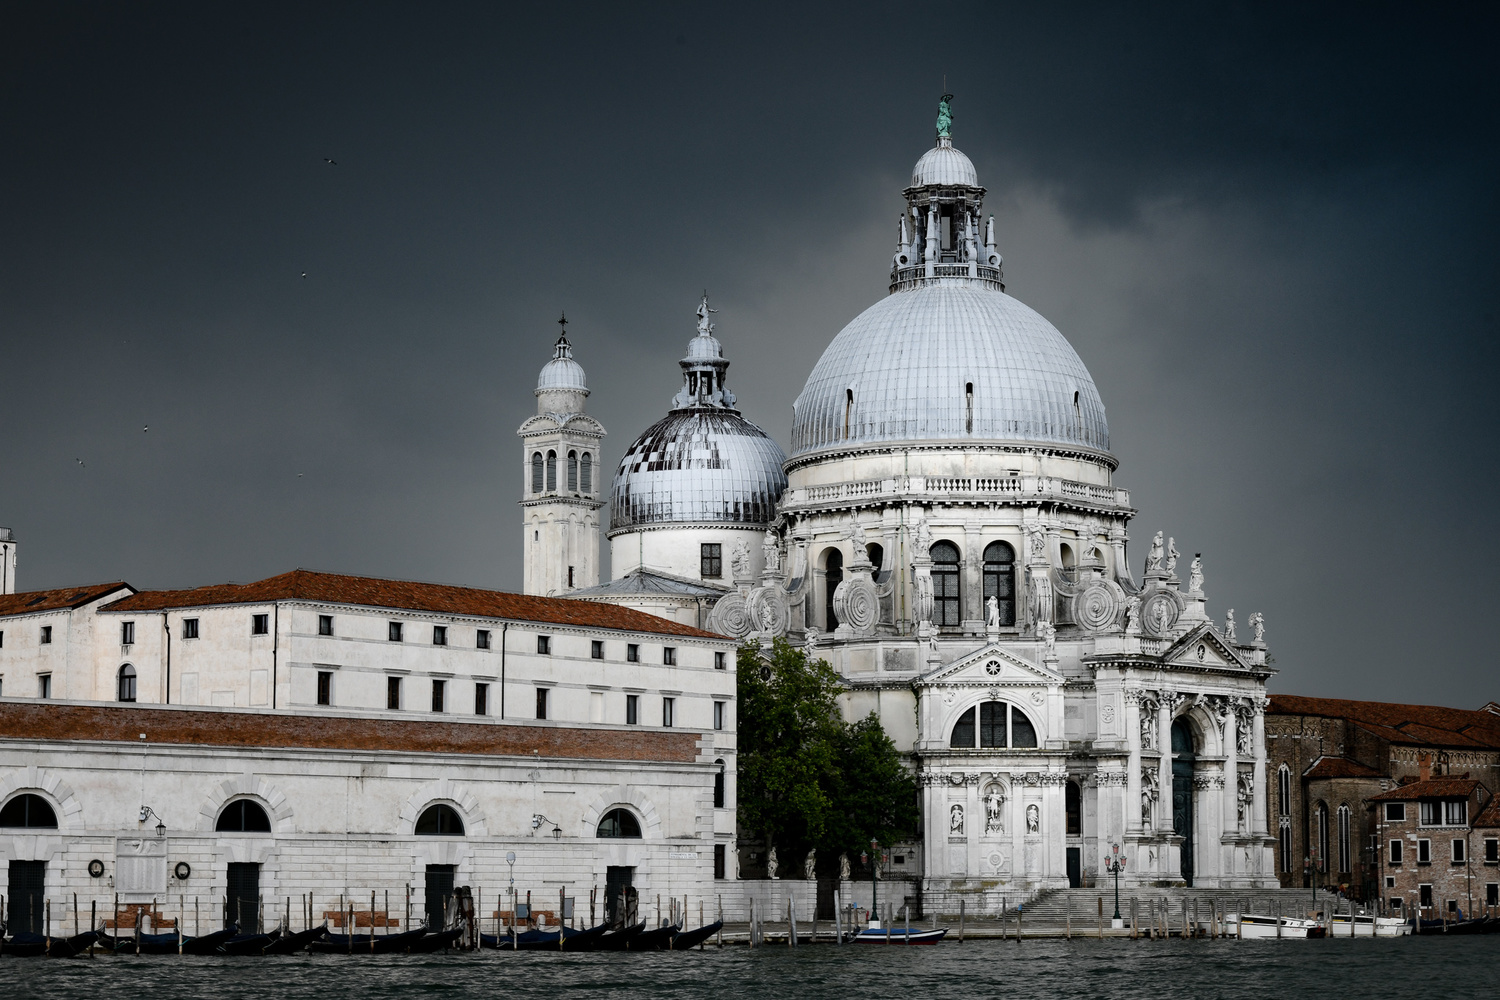 Santa Maria delle Salute by Martin Weiss